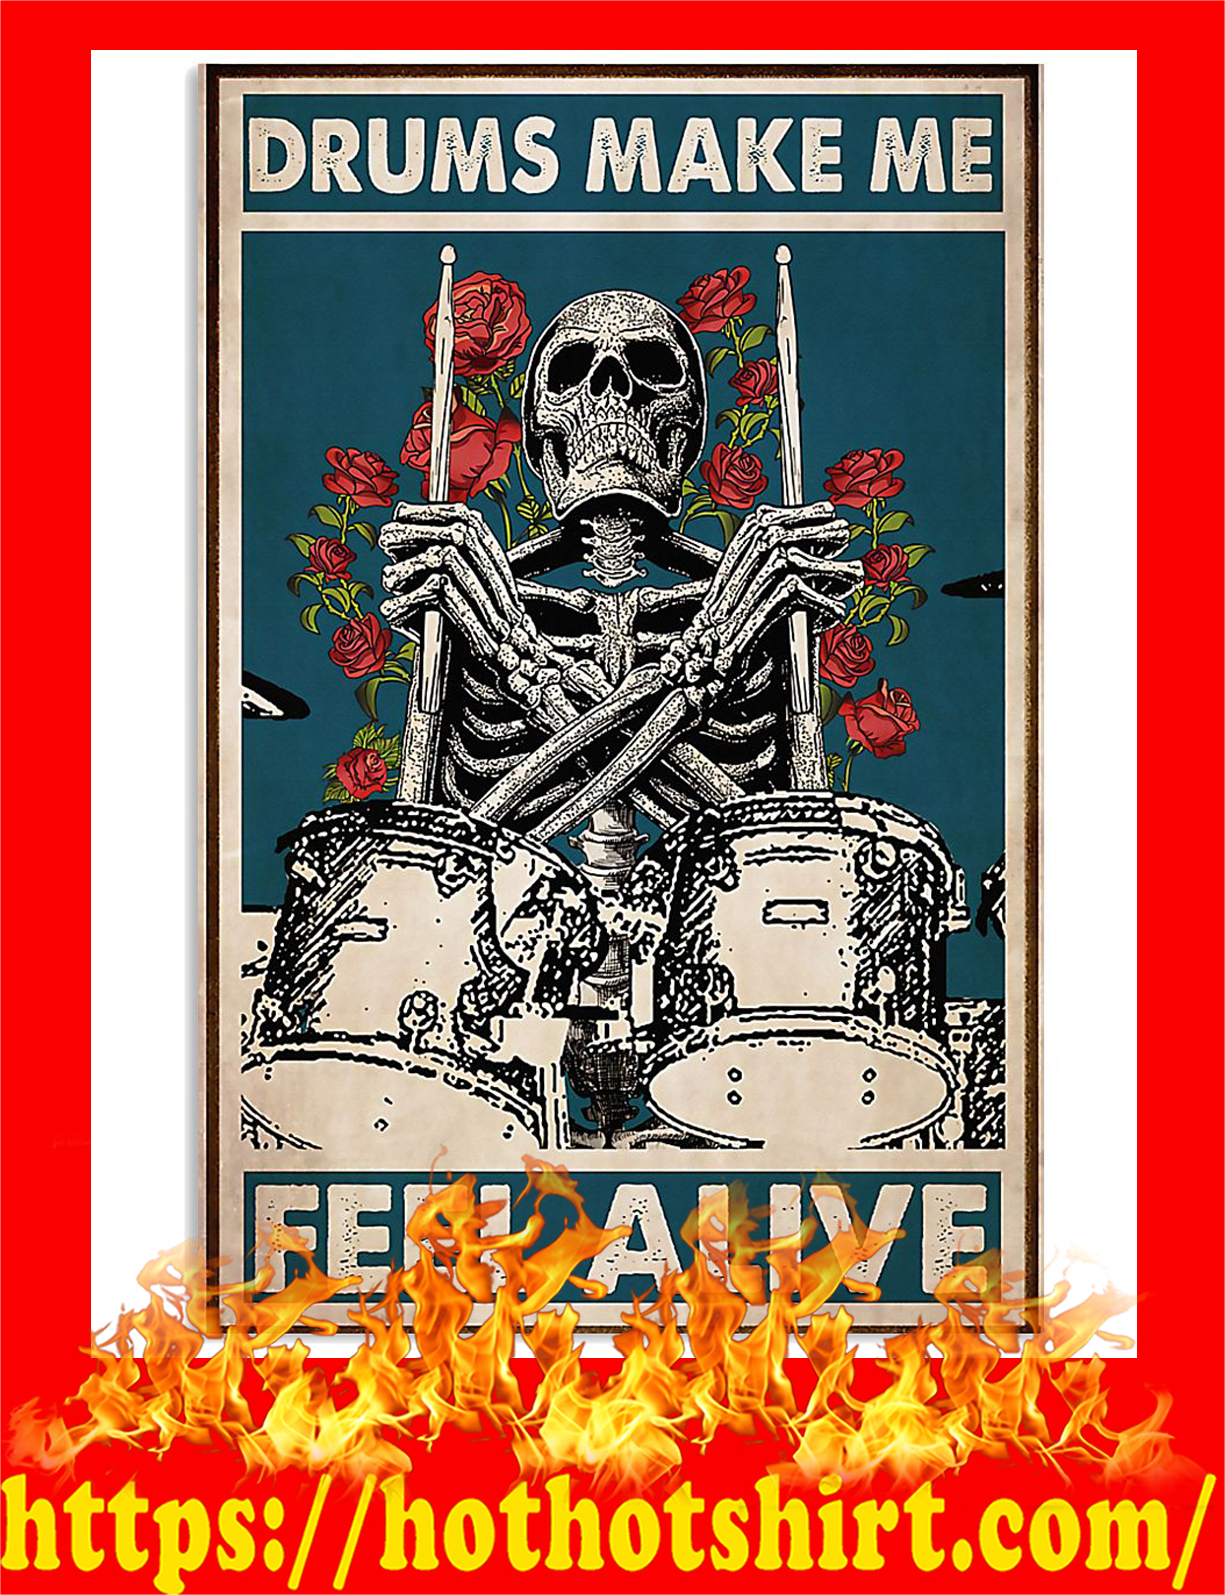 Skeleton drummer drums make me feel alive poster - Pic 3